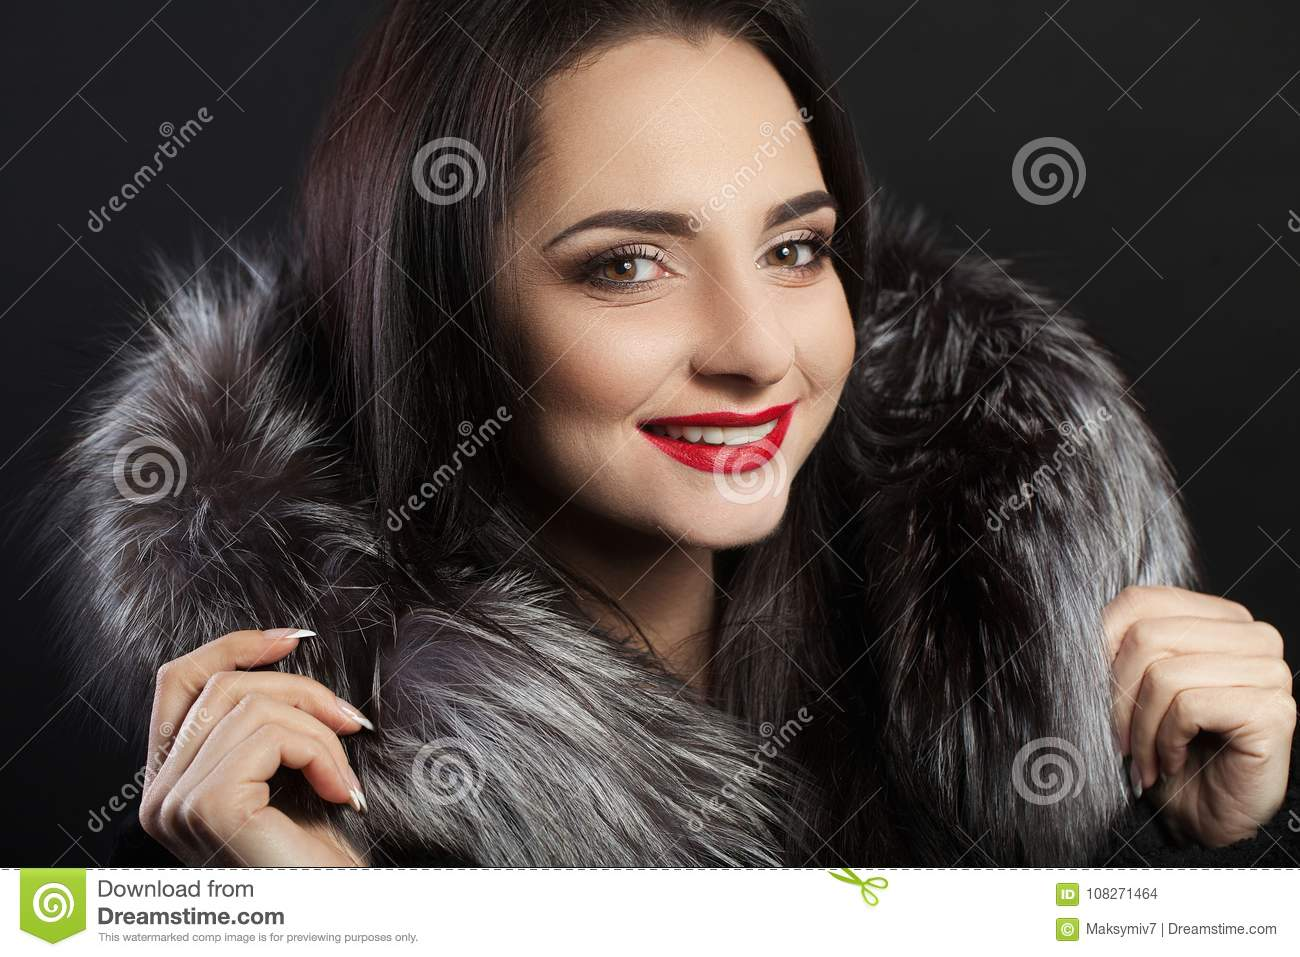 Download Beauty Fashion Woman Face With Perfect Smile Closeup Of Beautiful Girl Face With Bright